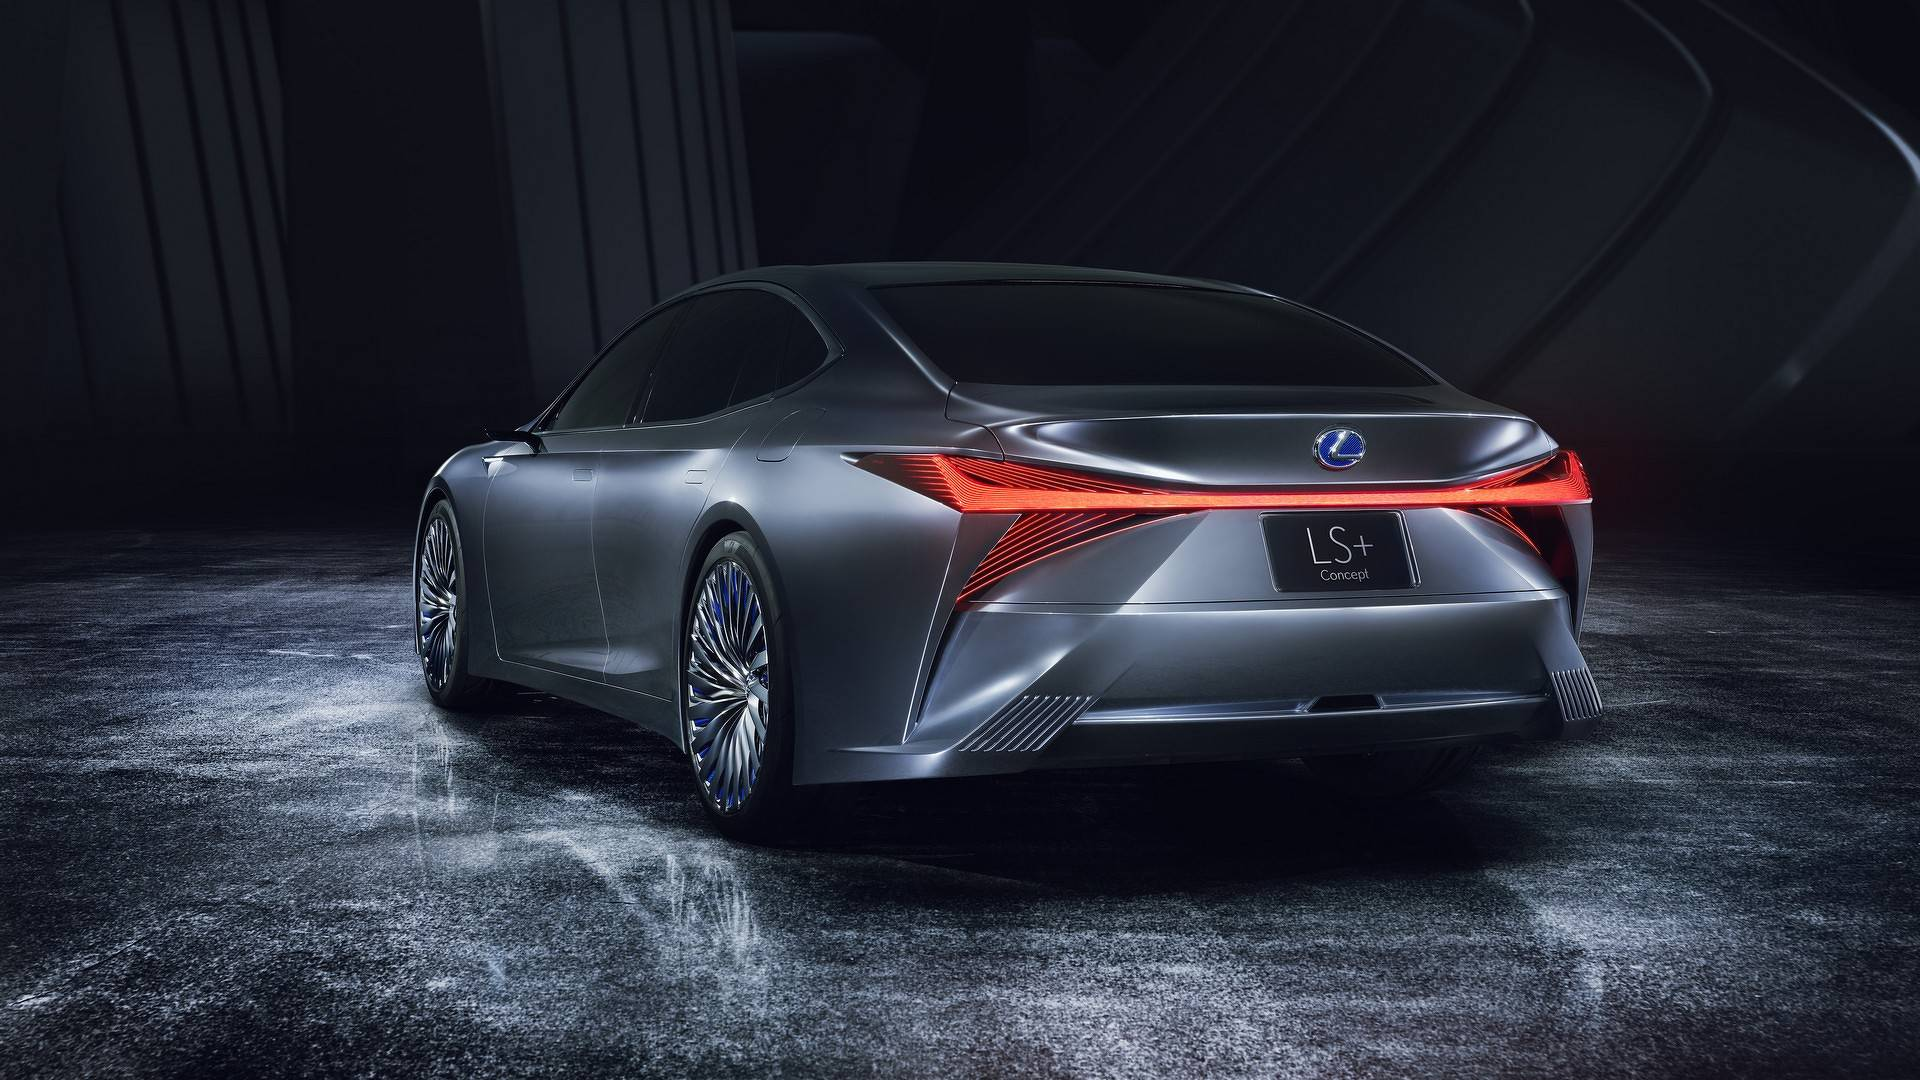 lexus-ls-concept-isnt-the-twin-turbo-v8-powered-ls-f-we-were-expecting_3 Amazing toyota Camry 2008 Cabin Air Filter Cars Trend